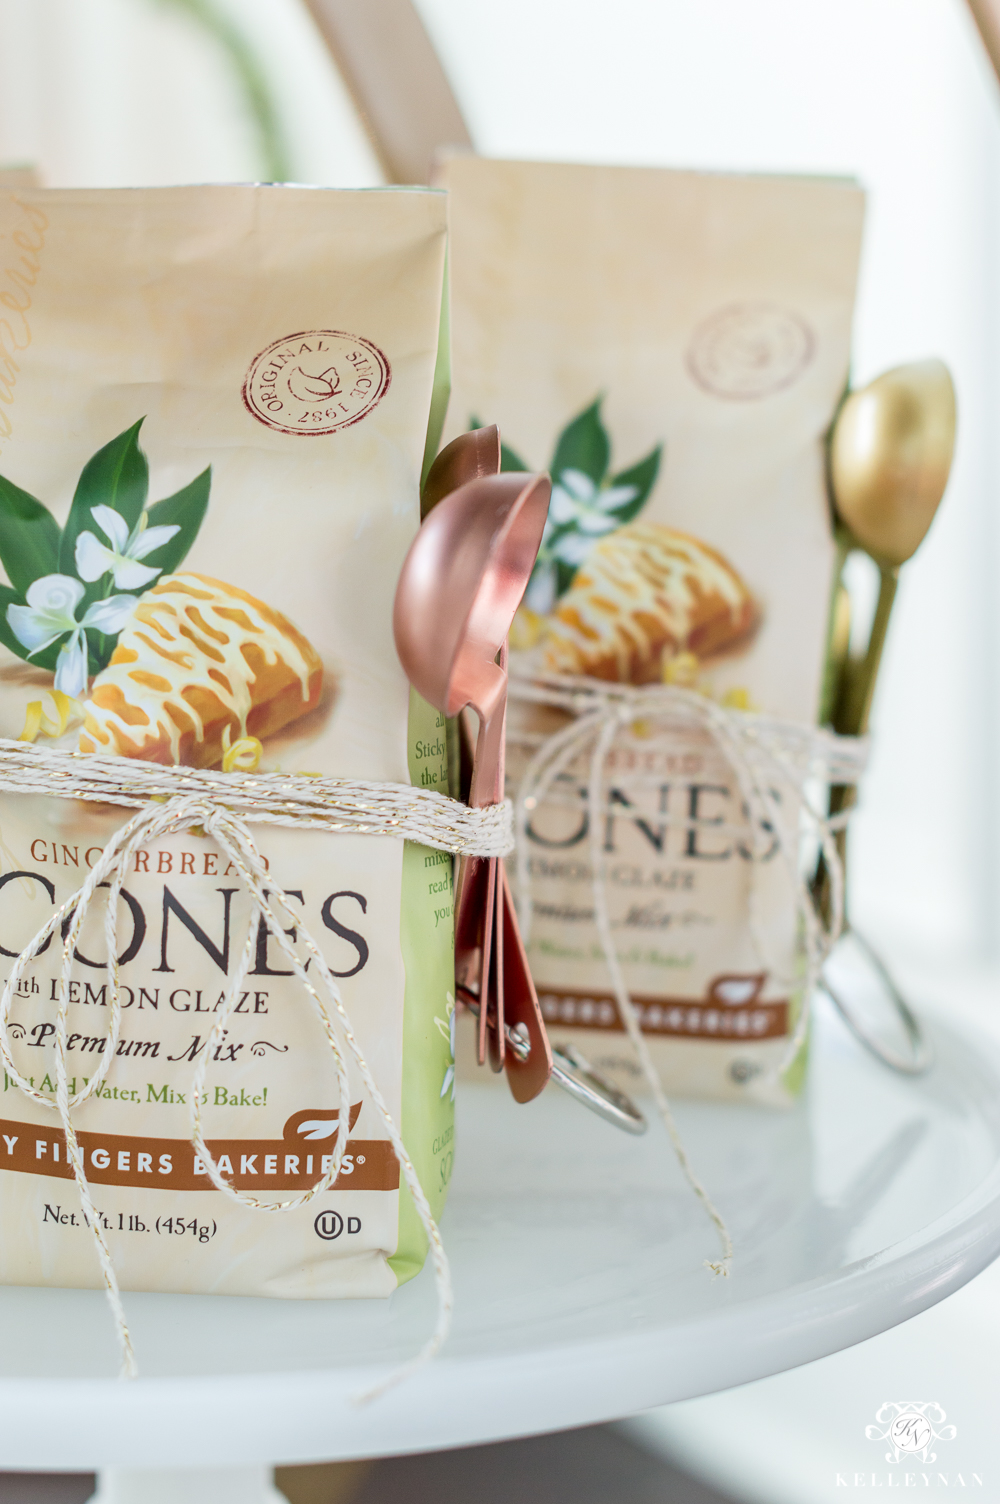 Scone mix with measuring spoons- neighbor gift ideas